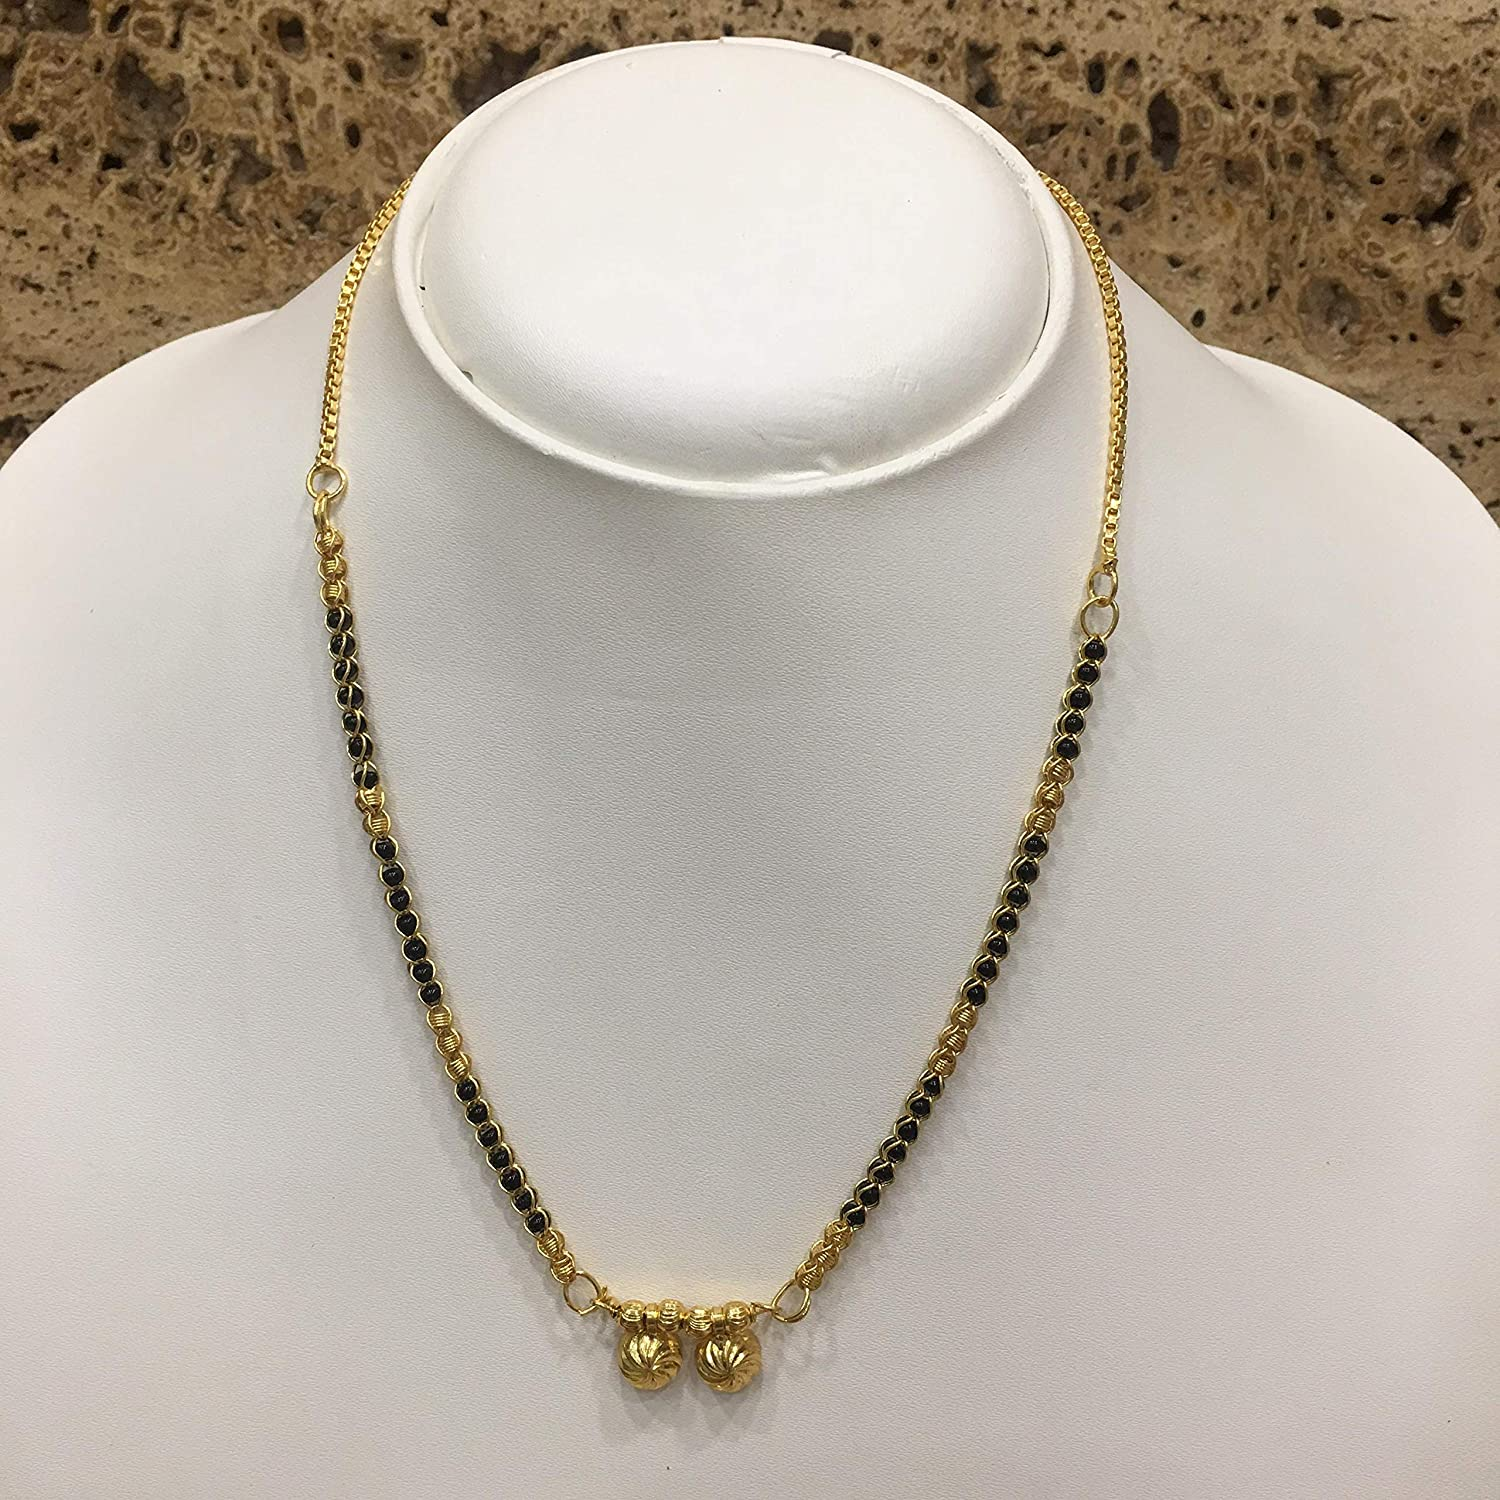 Buy Digital Dress Women S Jewellery Gold Plated Mangalsutra Necklace 18 Inch Length Chain Golden Vati Tanmaniya Pendant Traditional Black Gold Beads Single Line Layer Short Mangalsutra For Women And Girl At Amazon In,Bridal Mehndi Designs Full Hand Easy And Simple